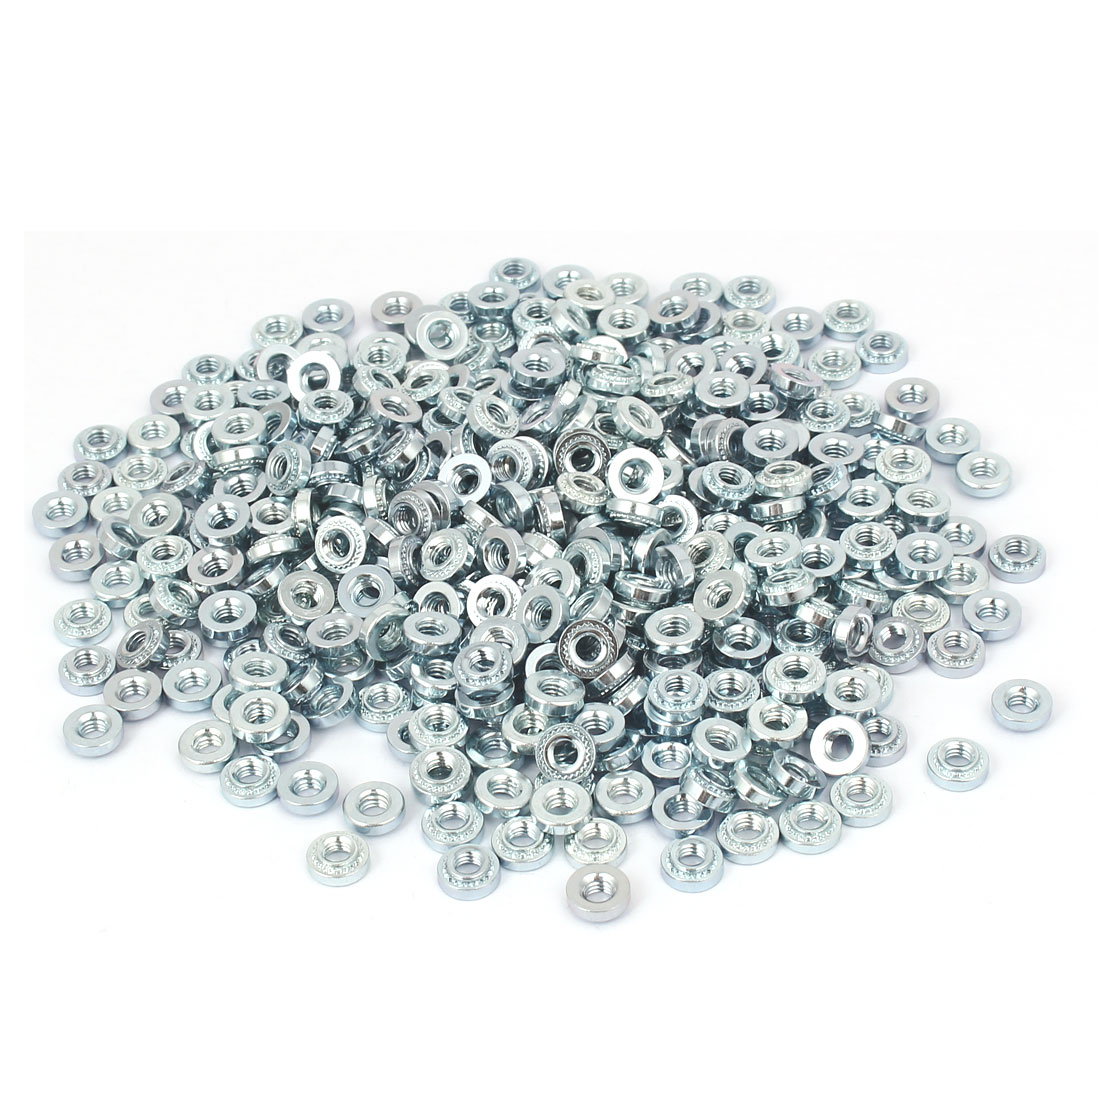 S-M4-1 Carbon Steel Self Clinching Rivet Nut Fastener 500pcs for 1.0mm Thin Plates